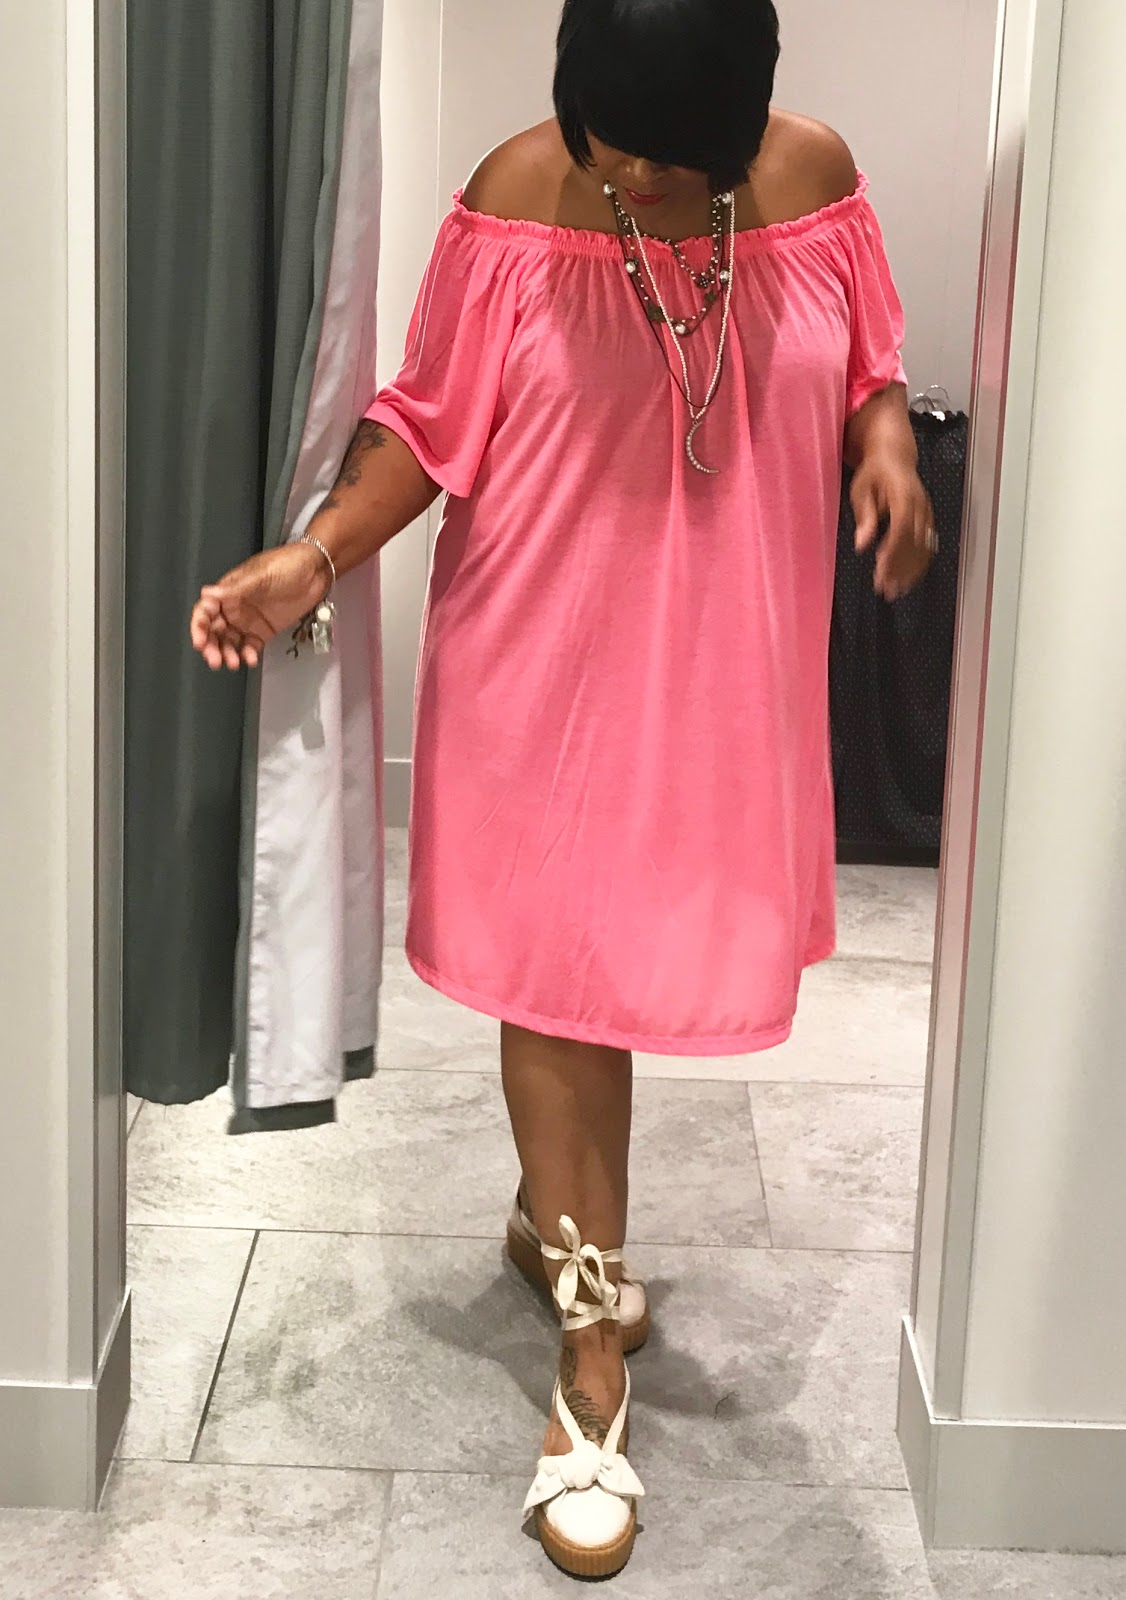 Image: Woman showing off outfit with pink details. Off the shoulder dress.